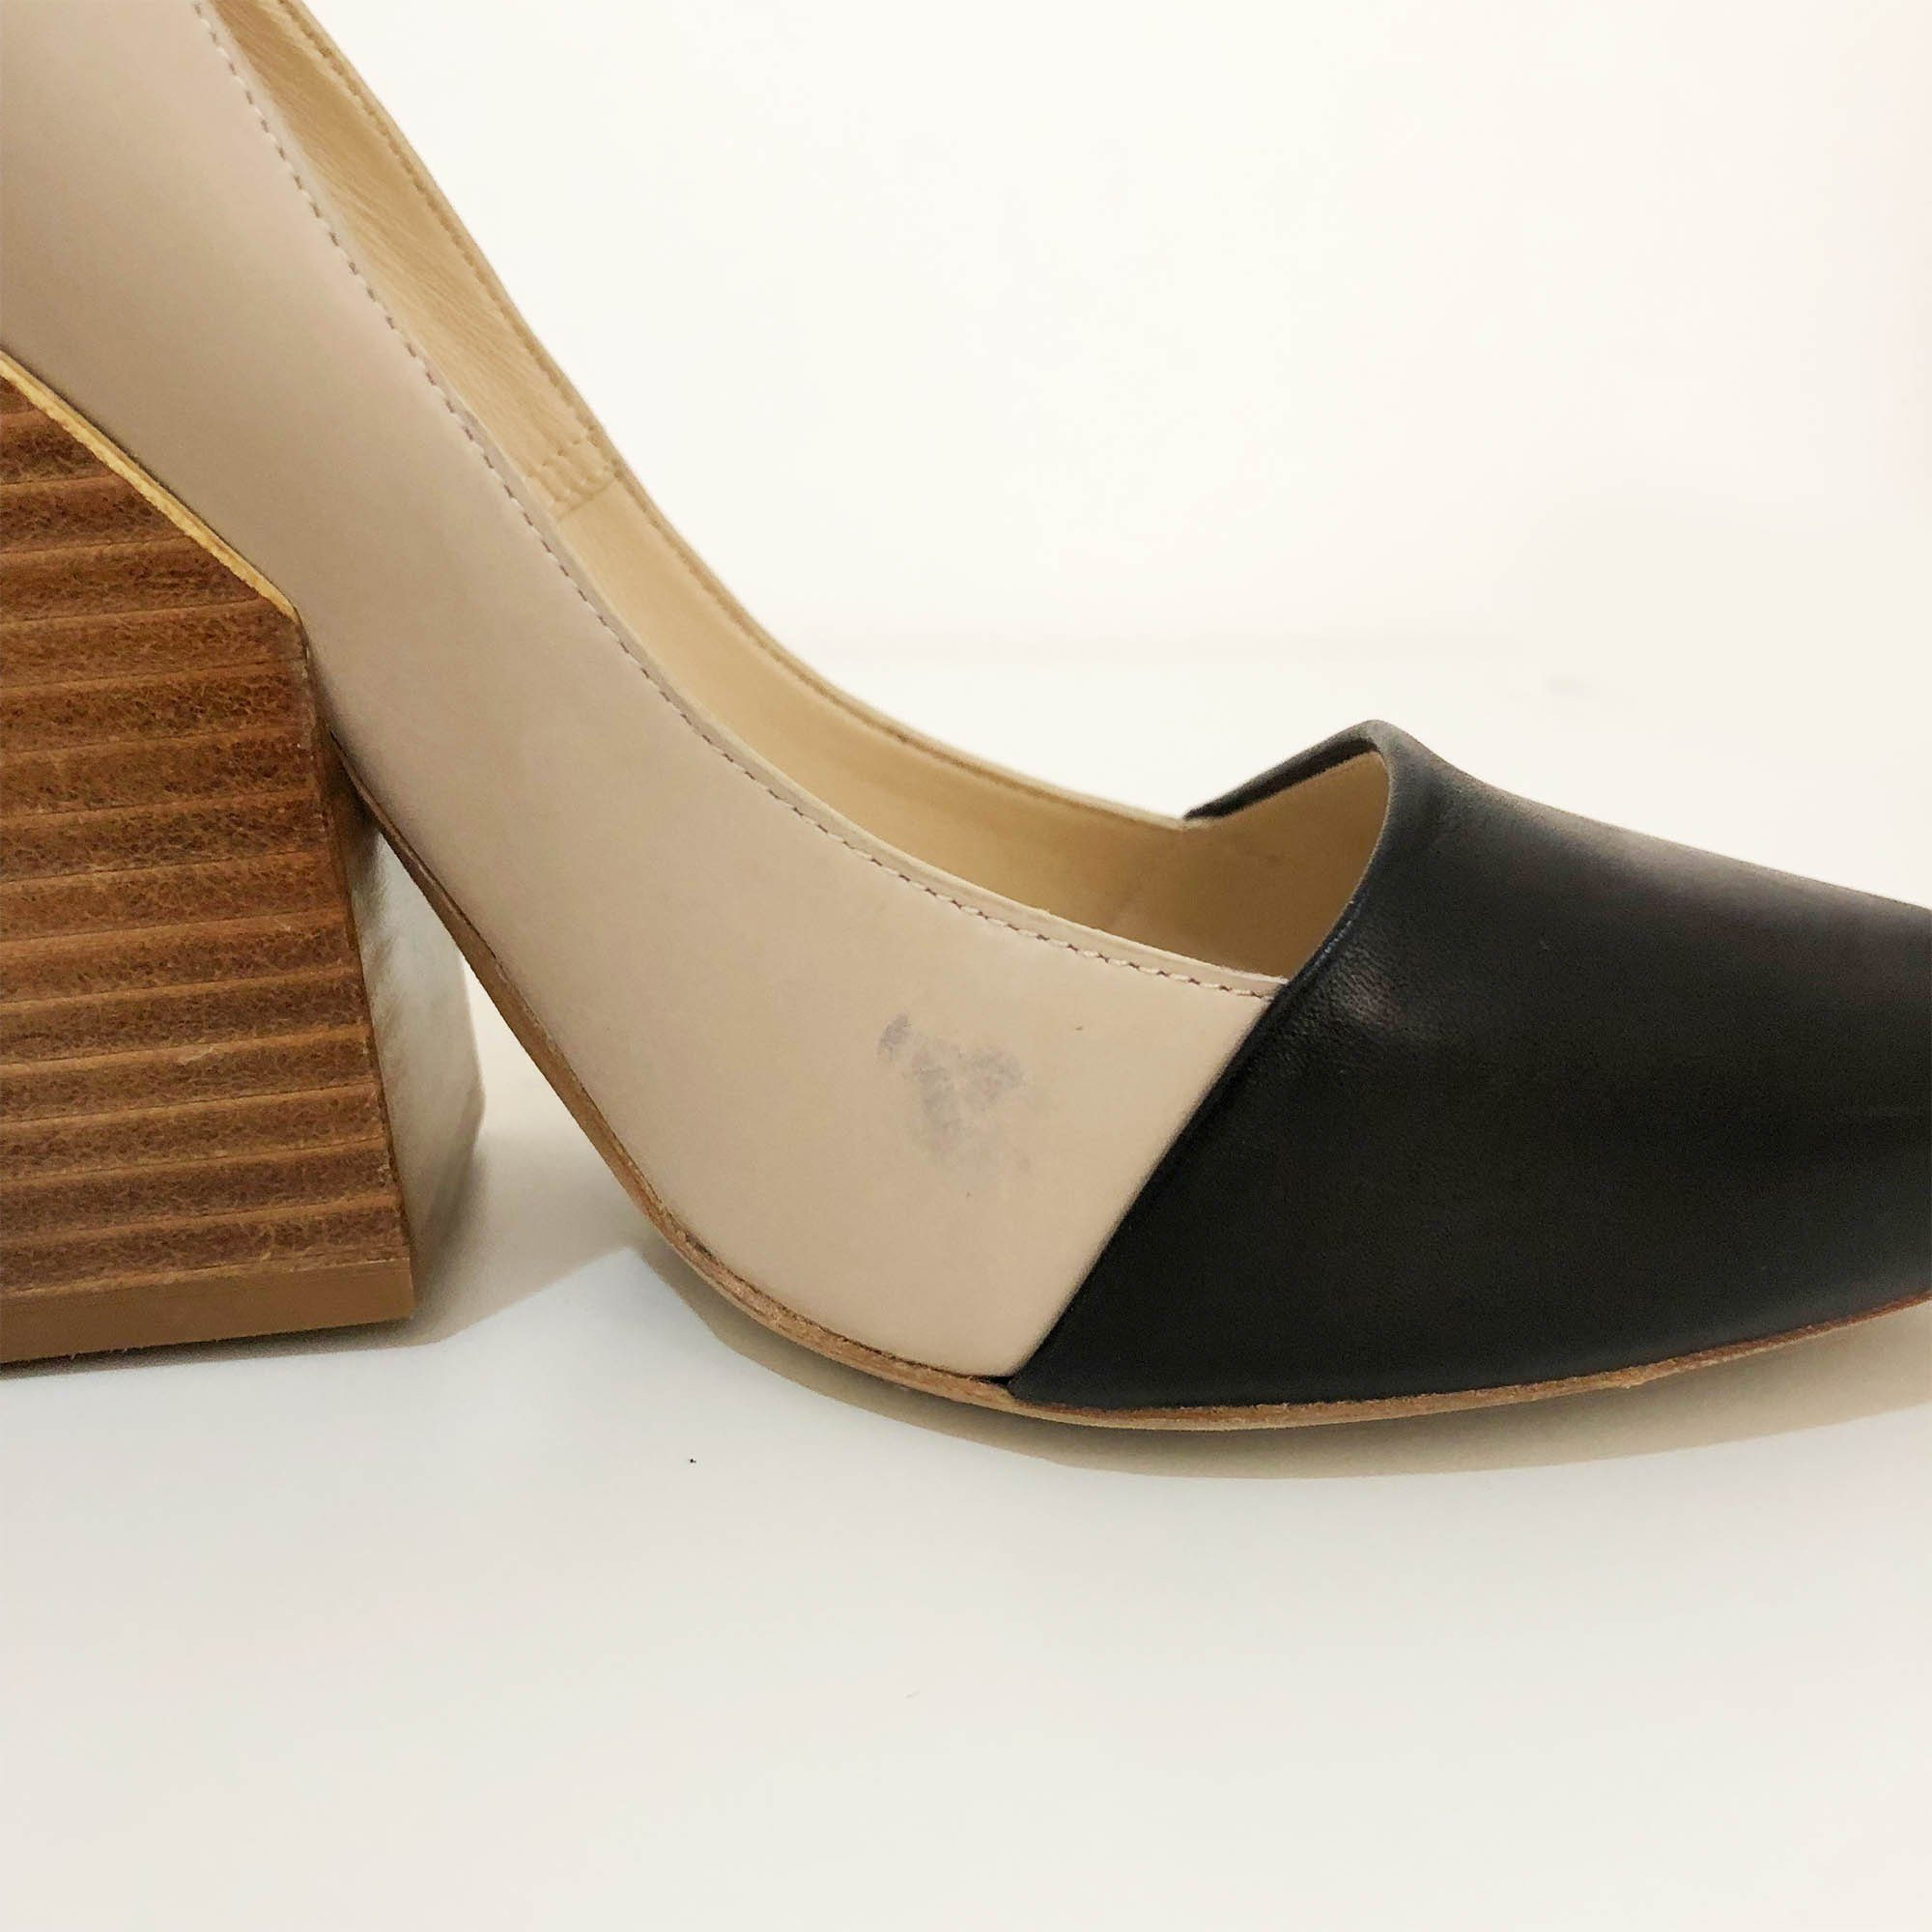 Chloe Two-tone Leather Block Heel Pumps